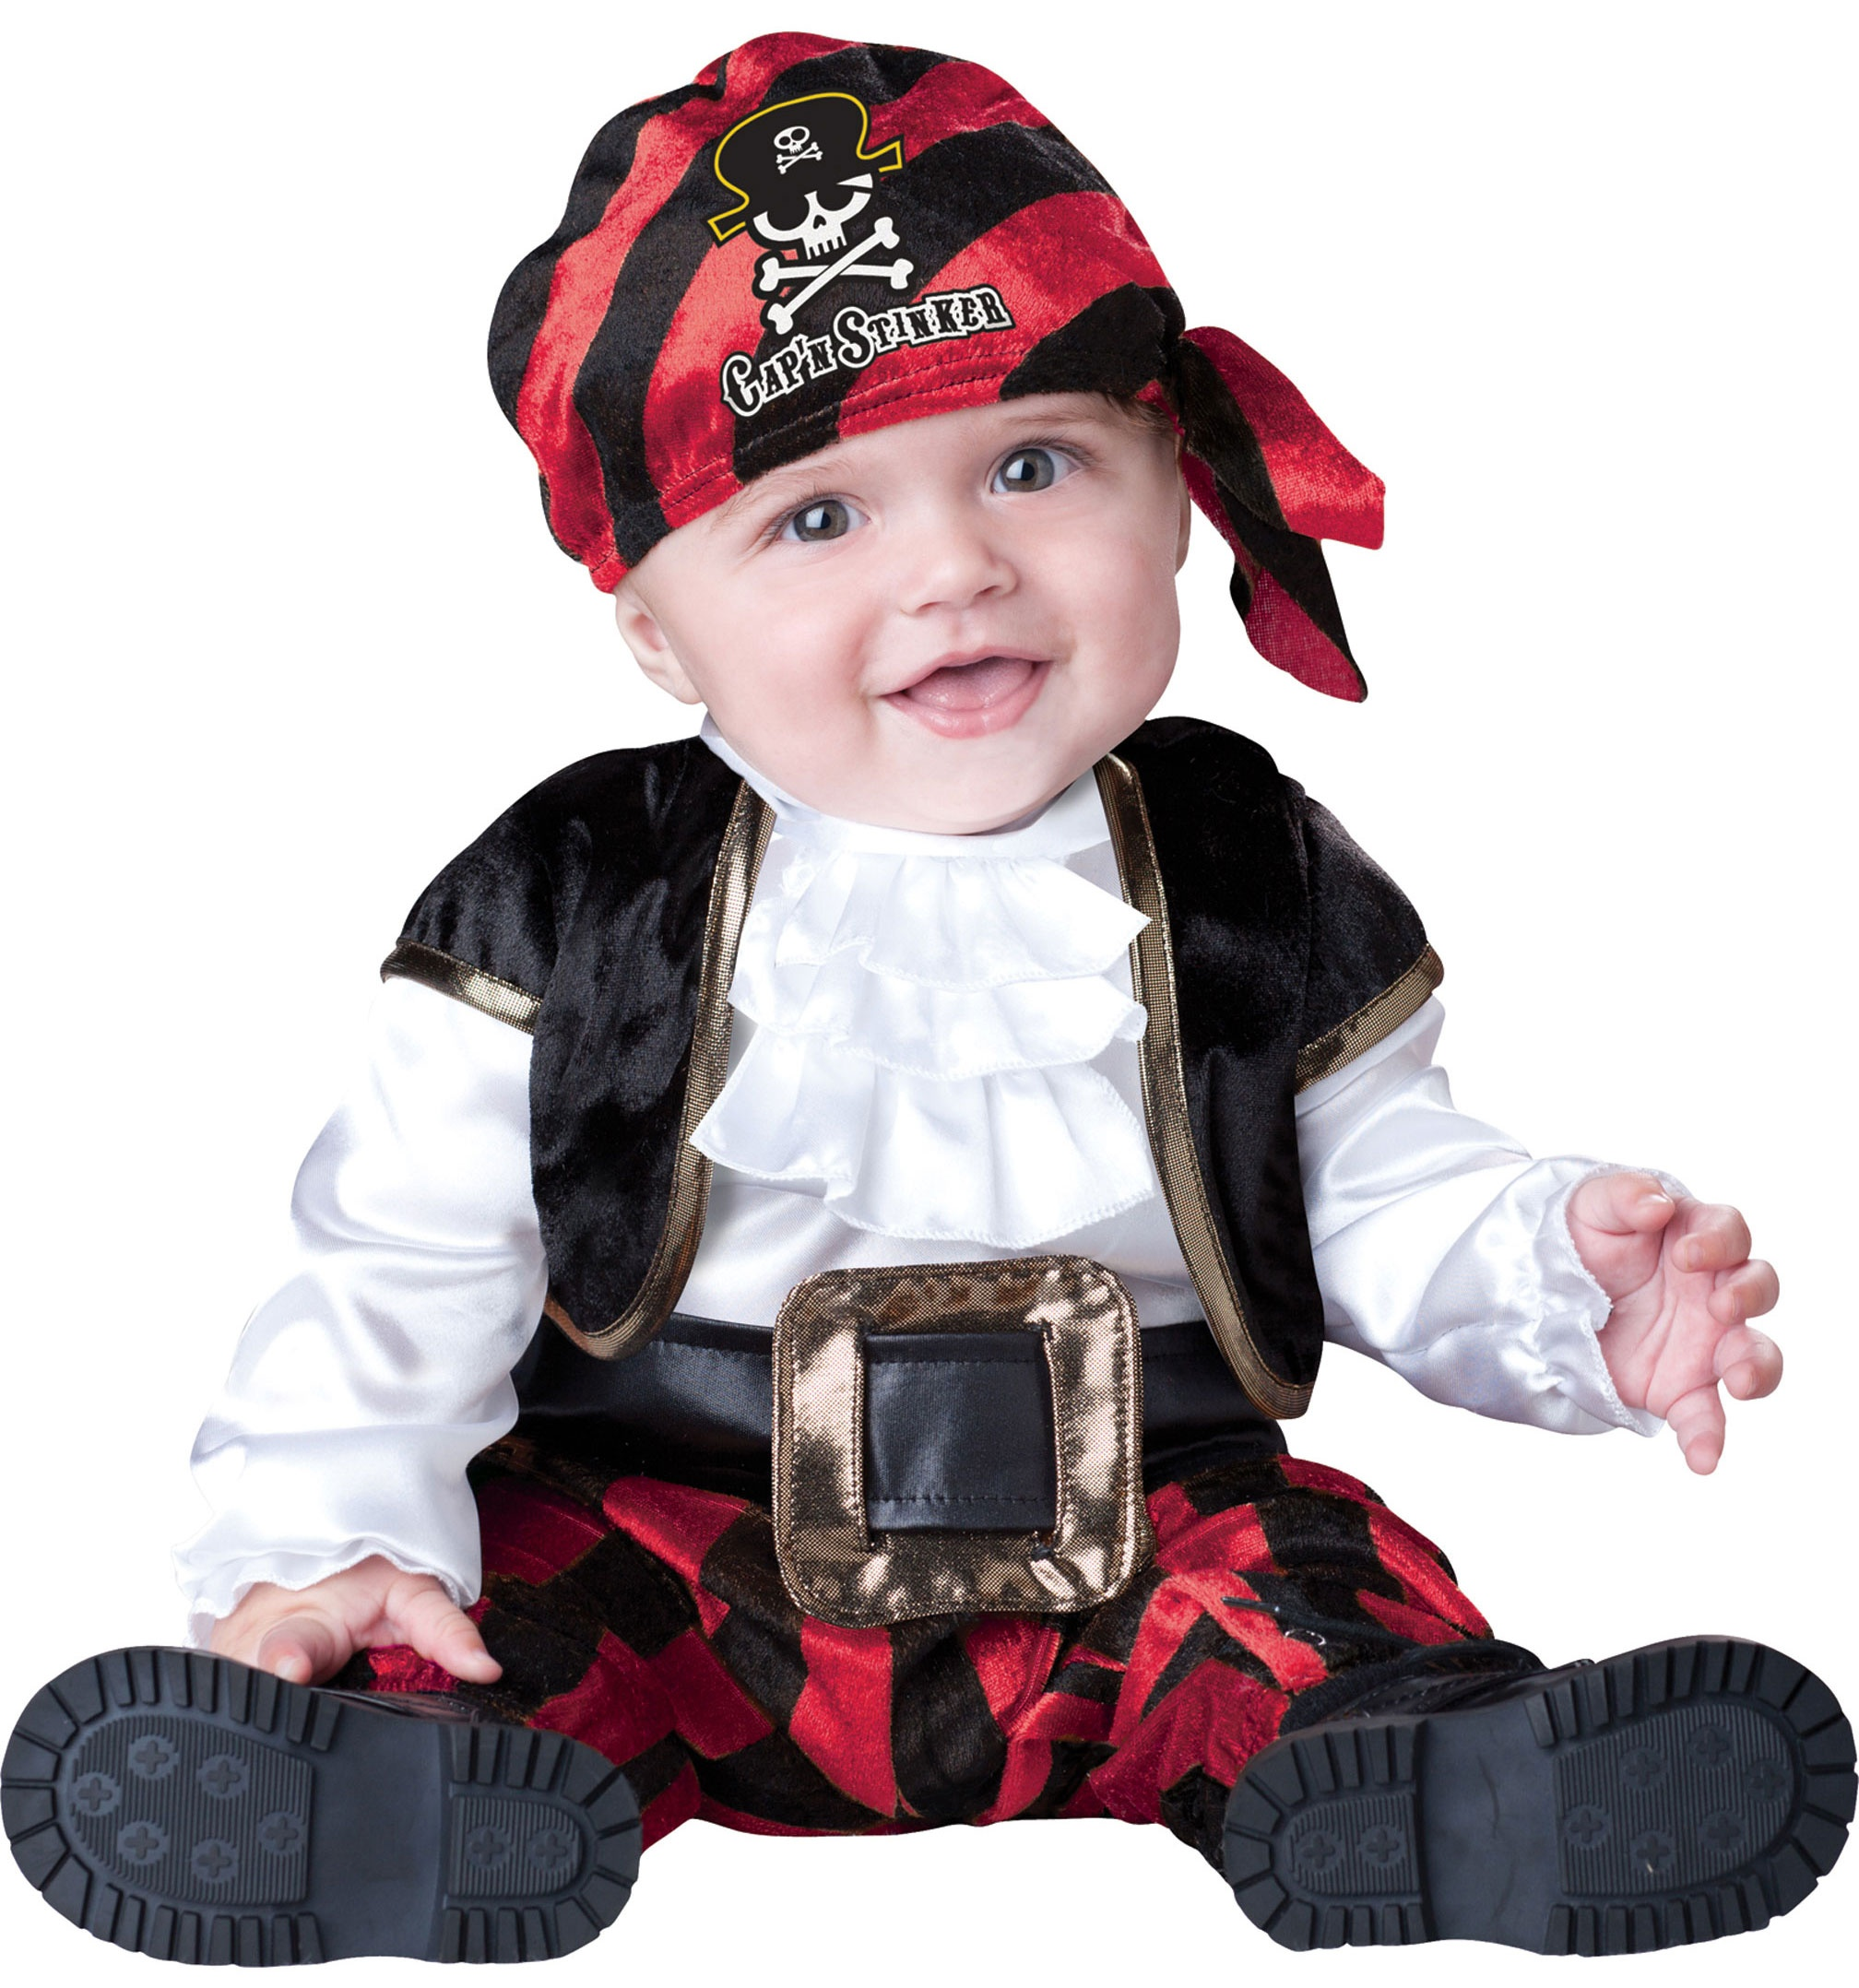 captain stinker pirate baby costume mr costumes. Black Bedroom Furniture Sets. Home Design Ideas